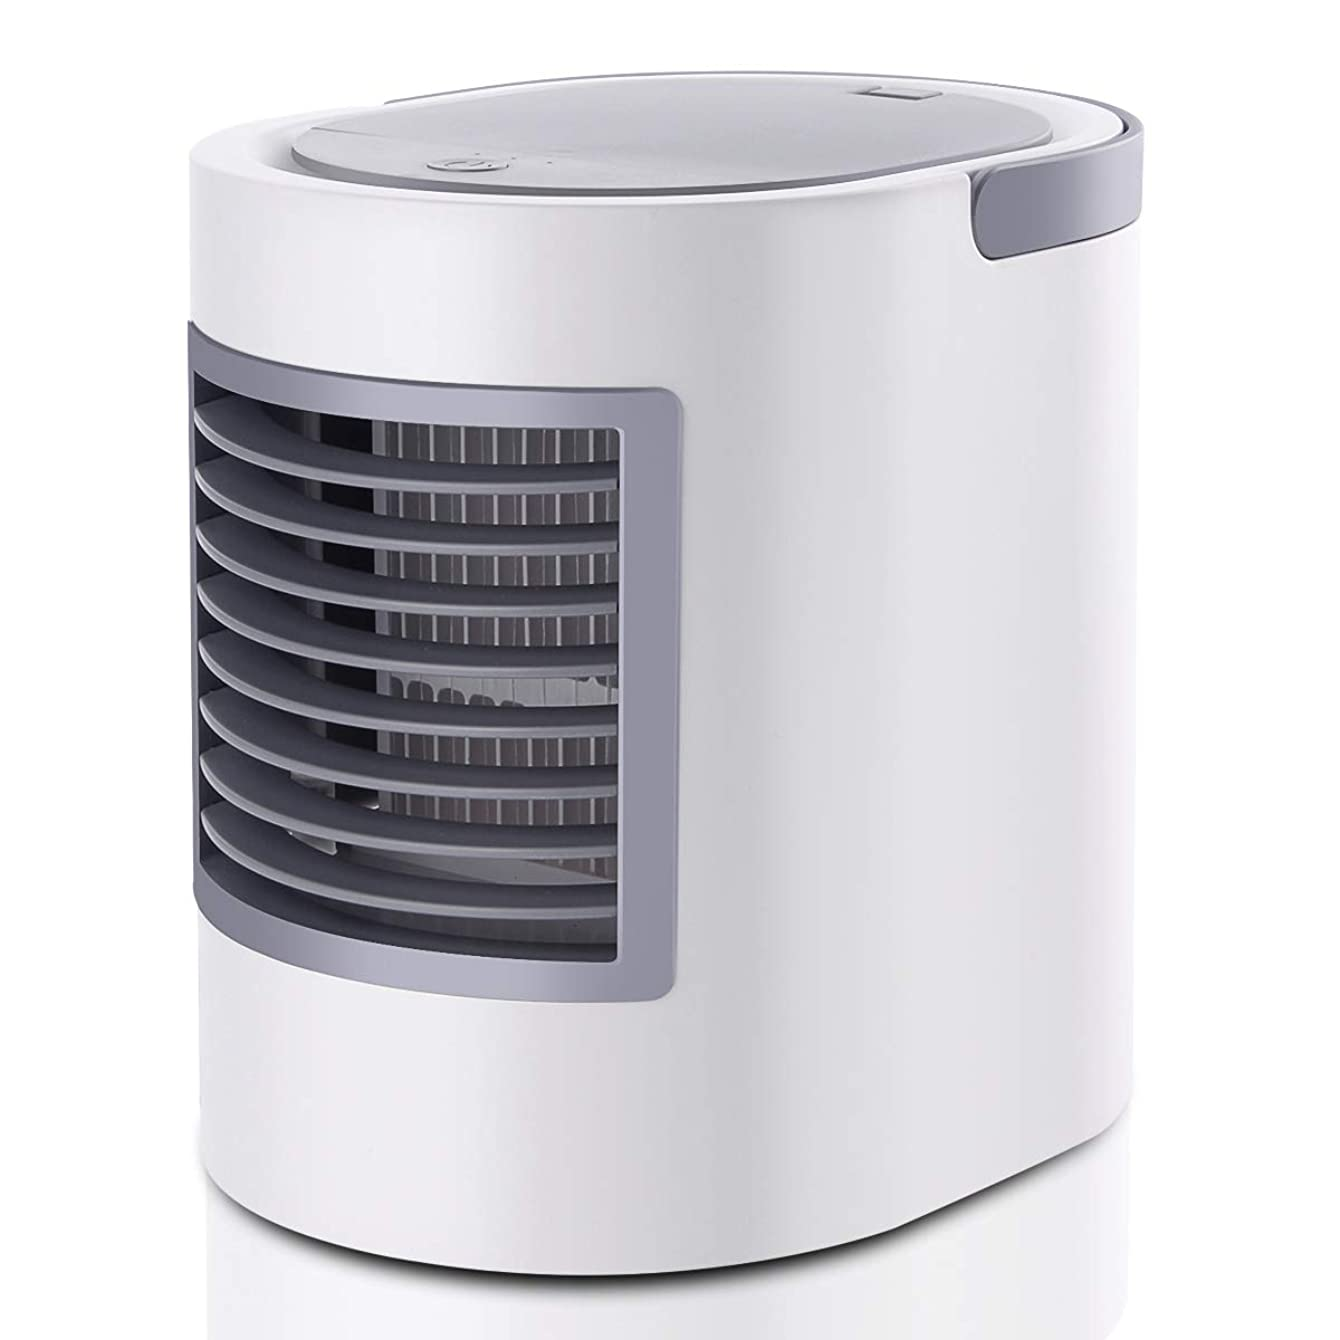 RundA Space Cooler Fan, [Newest 2019] Personal Air Conditioner Cooler Fan with 480ml Water Tank, Portable Water Cooler Fan Humidifiers Featured Colorful Light for Bedroom, Living Room, Office